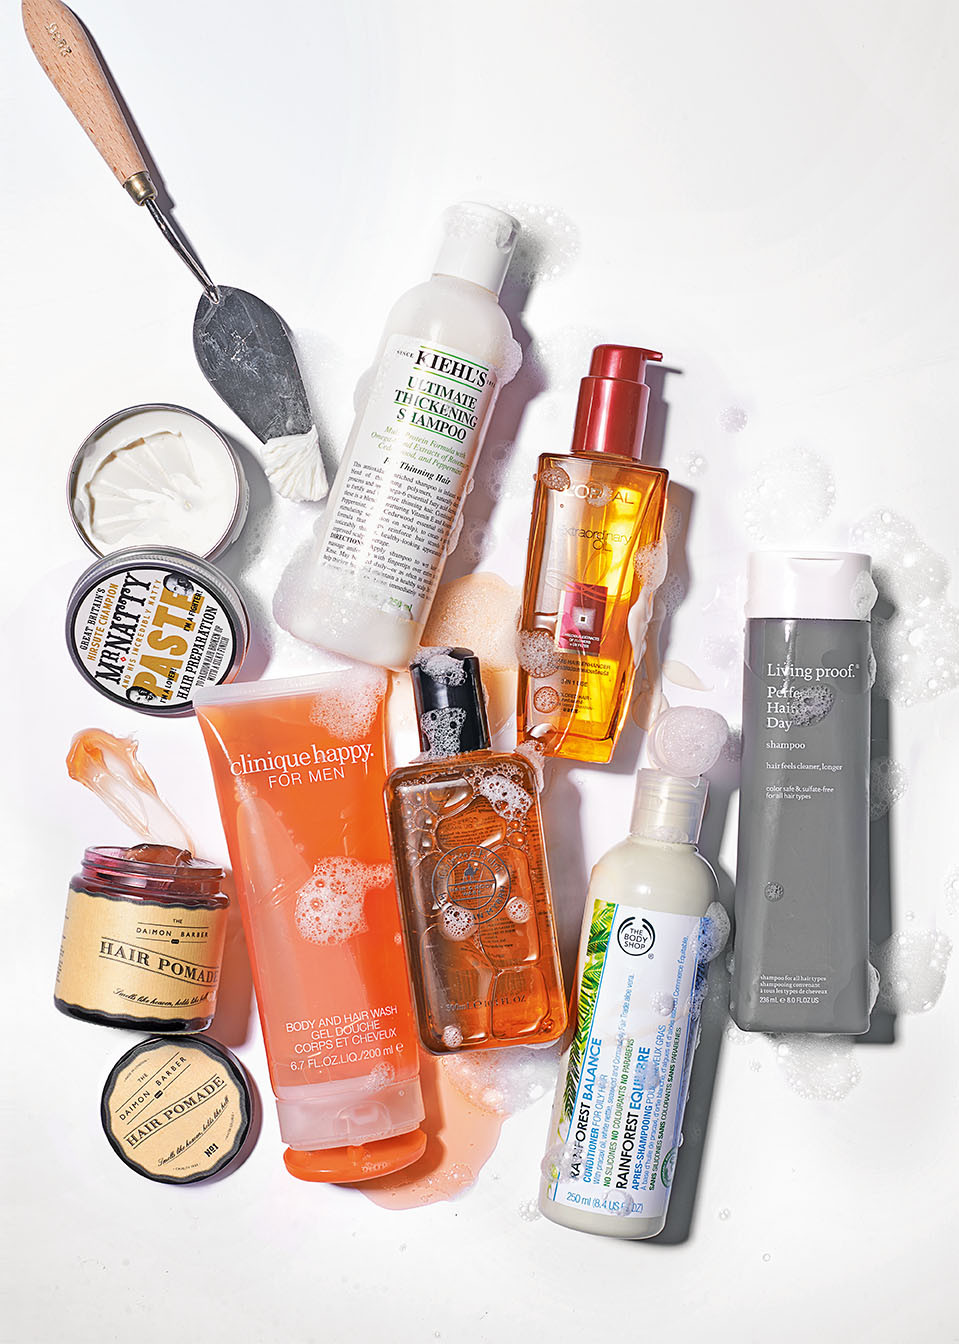 Men's grooming – Five steps of styling products